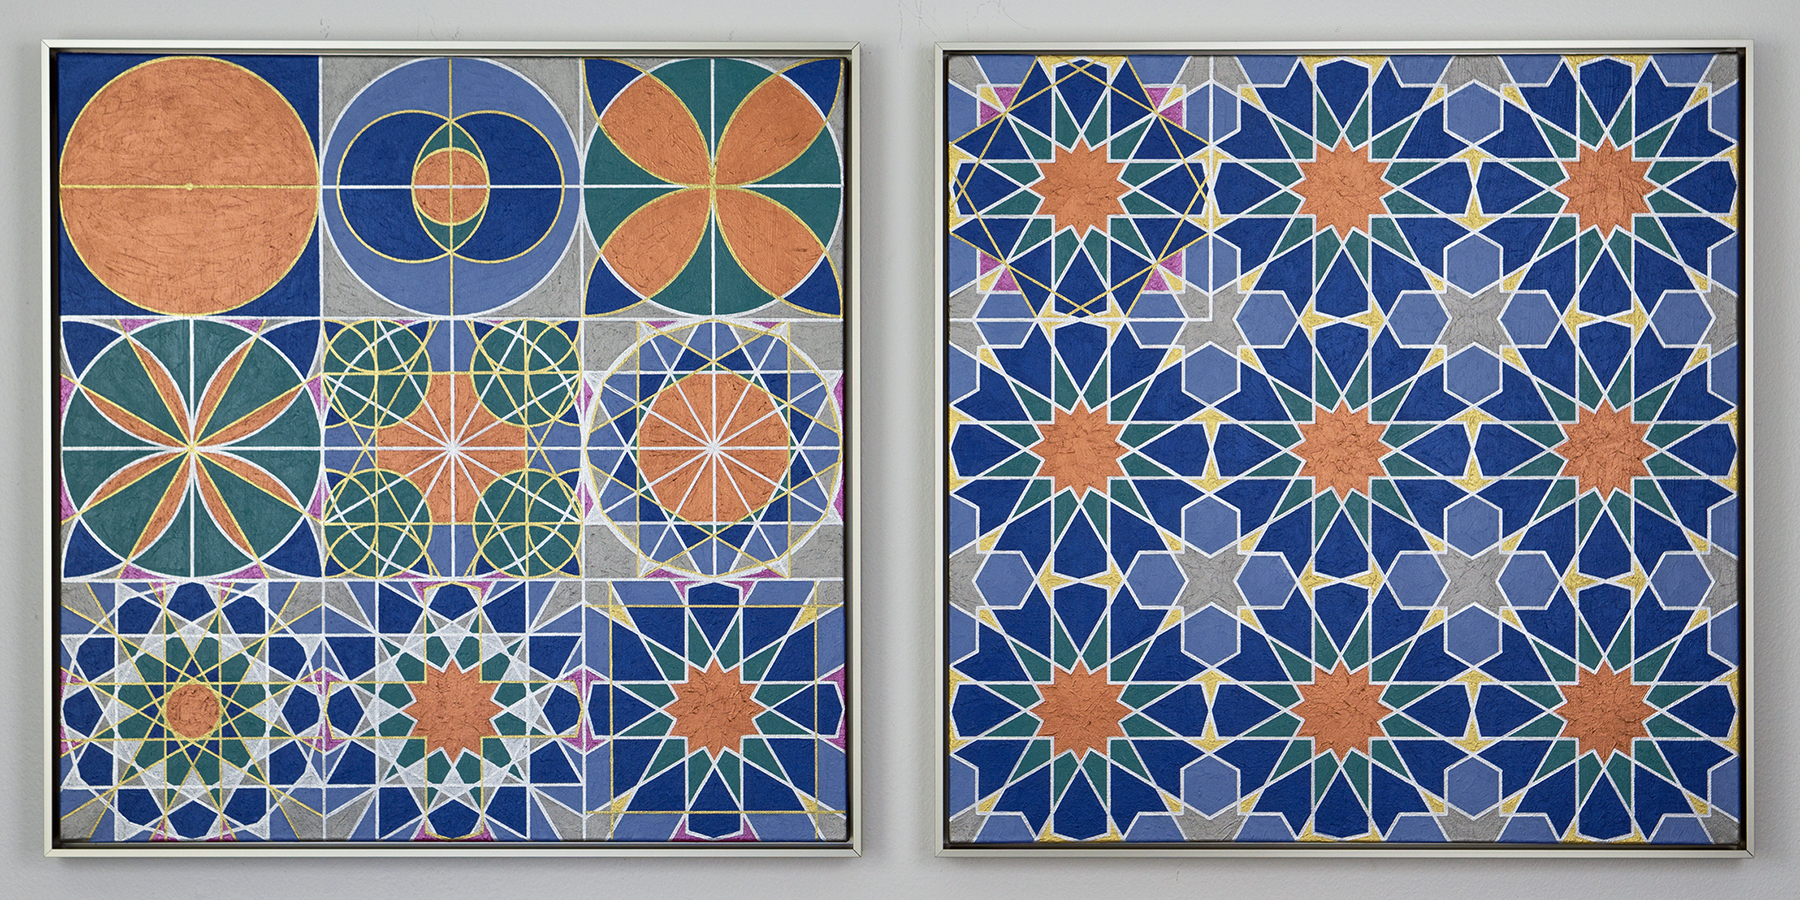 Panels 1 and 2 of the 